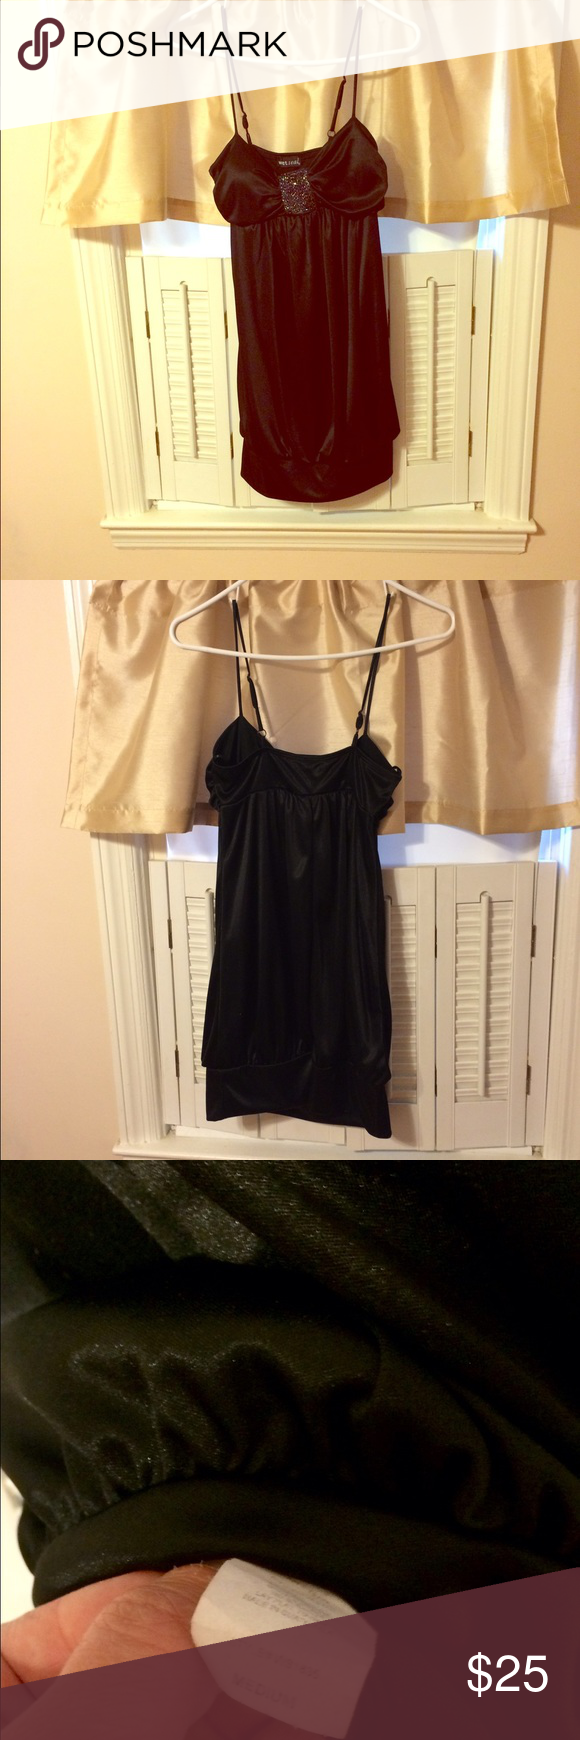 Black jeweled dress This gorgeous 100% polyester, black dress has a satin look and feel. Has a perfectly in tact jeweled pattern on the front side. Adjustable straps and a fitted black band at the bottom. Ultra sexy and in near perfect condition. Wet Seal Dresses Mini